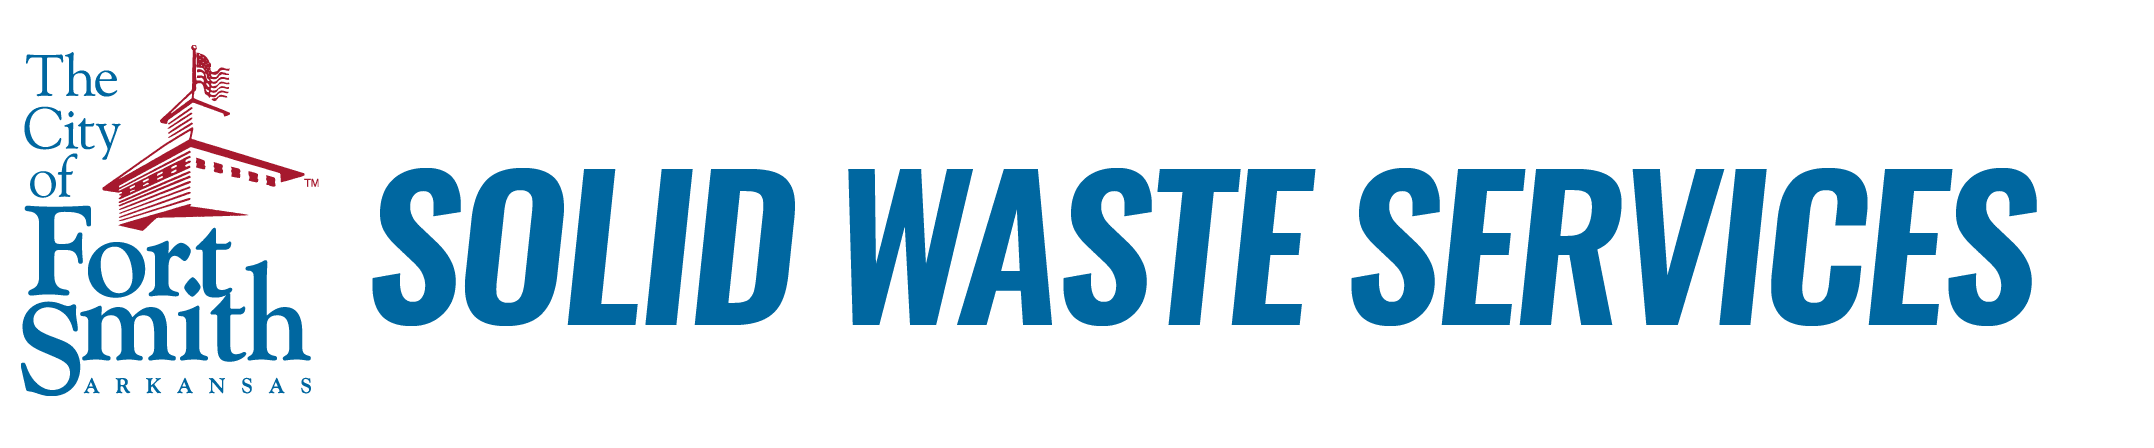 City of Fort Smith: Solid Waste Services